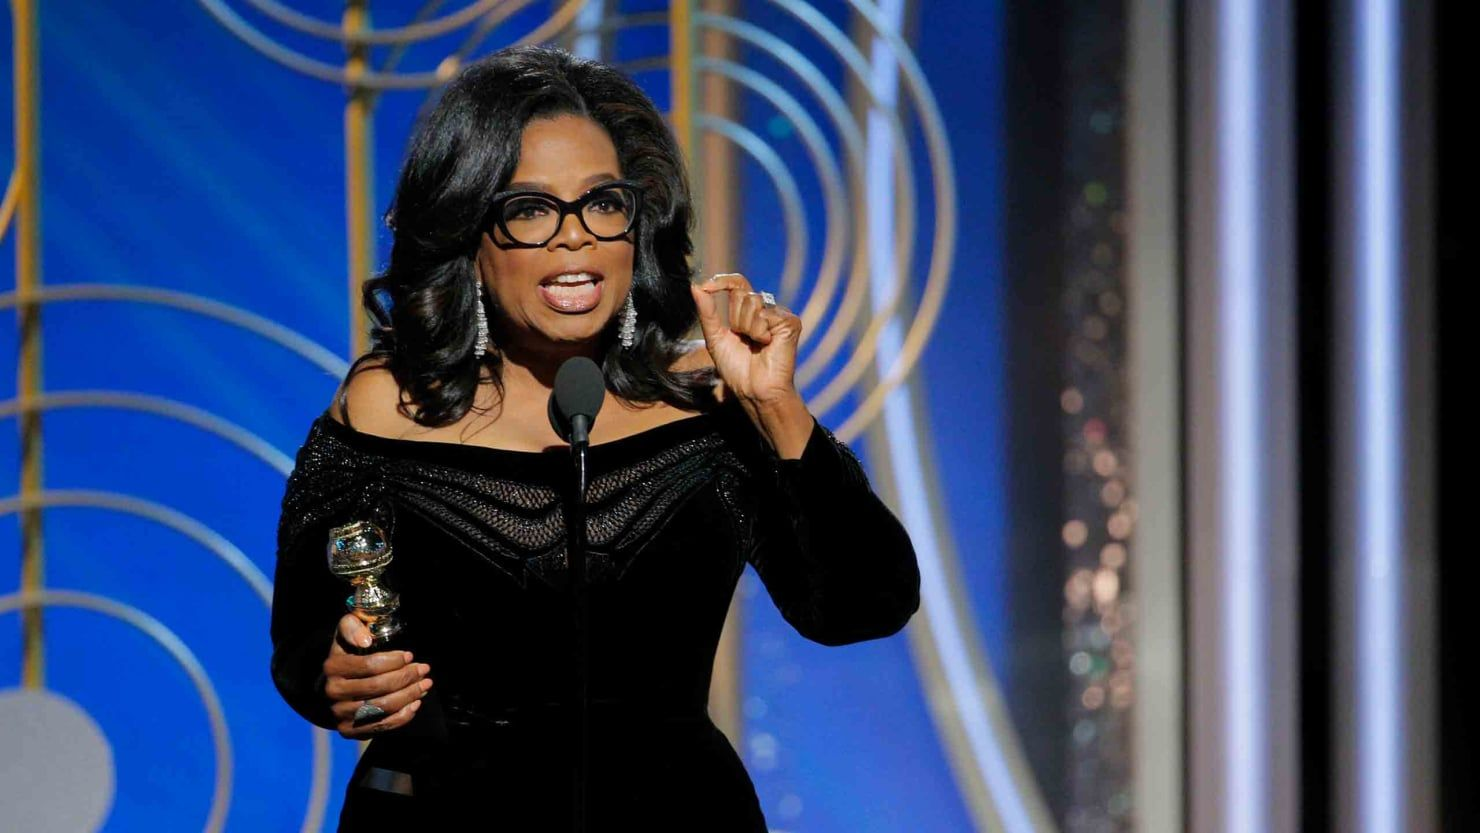 Oprah at the Golden Globes